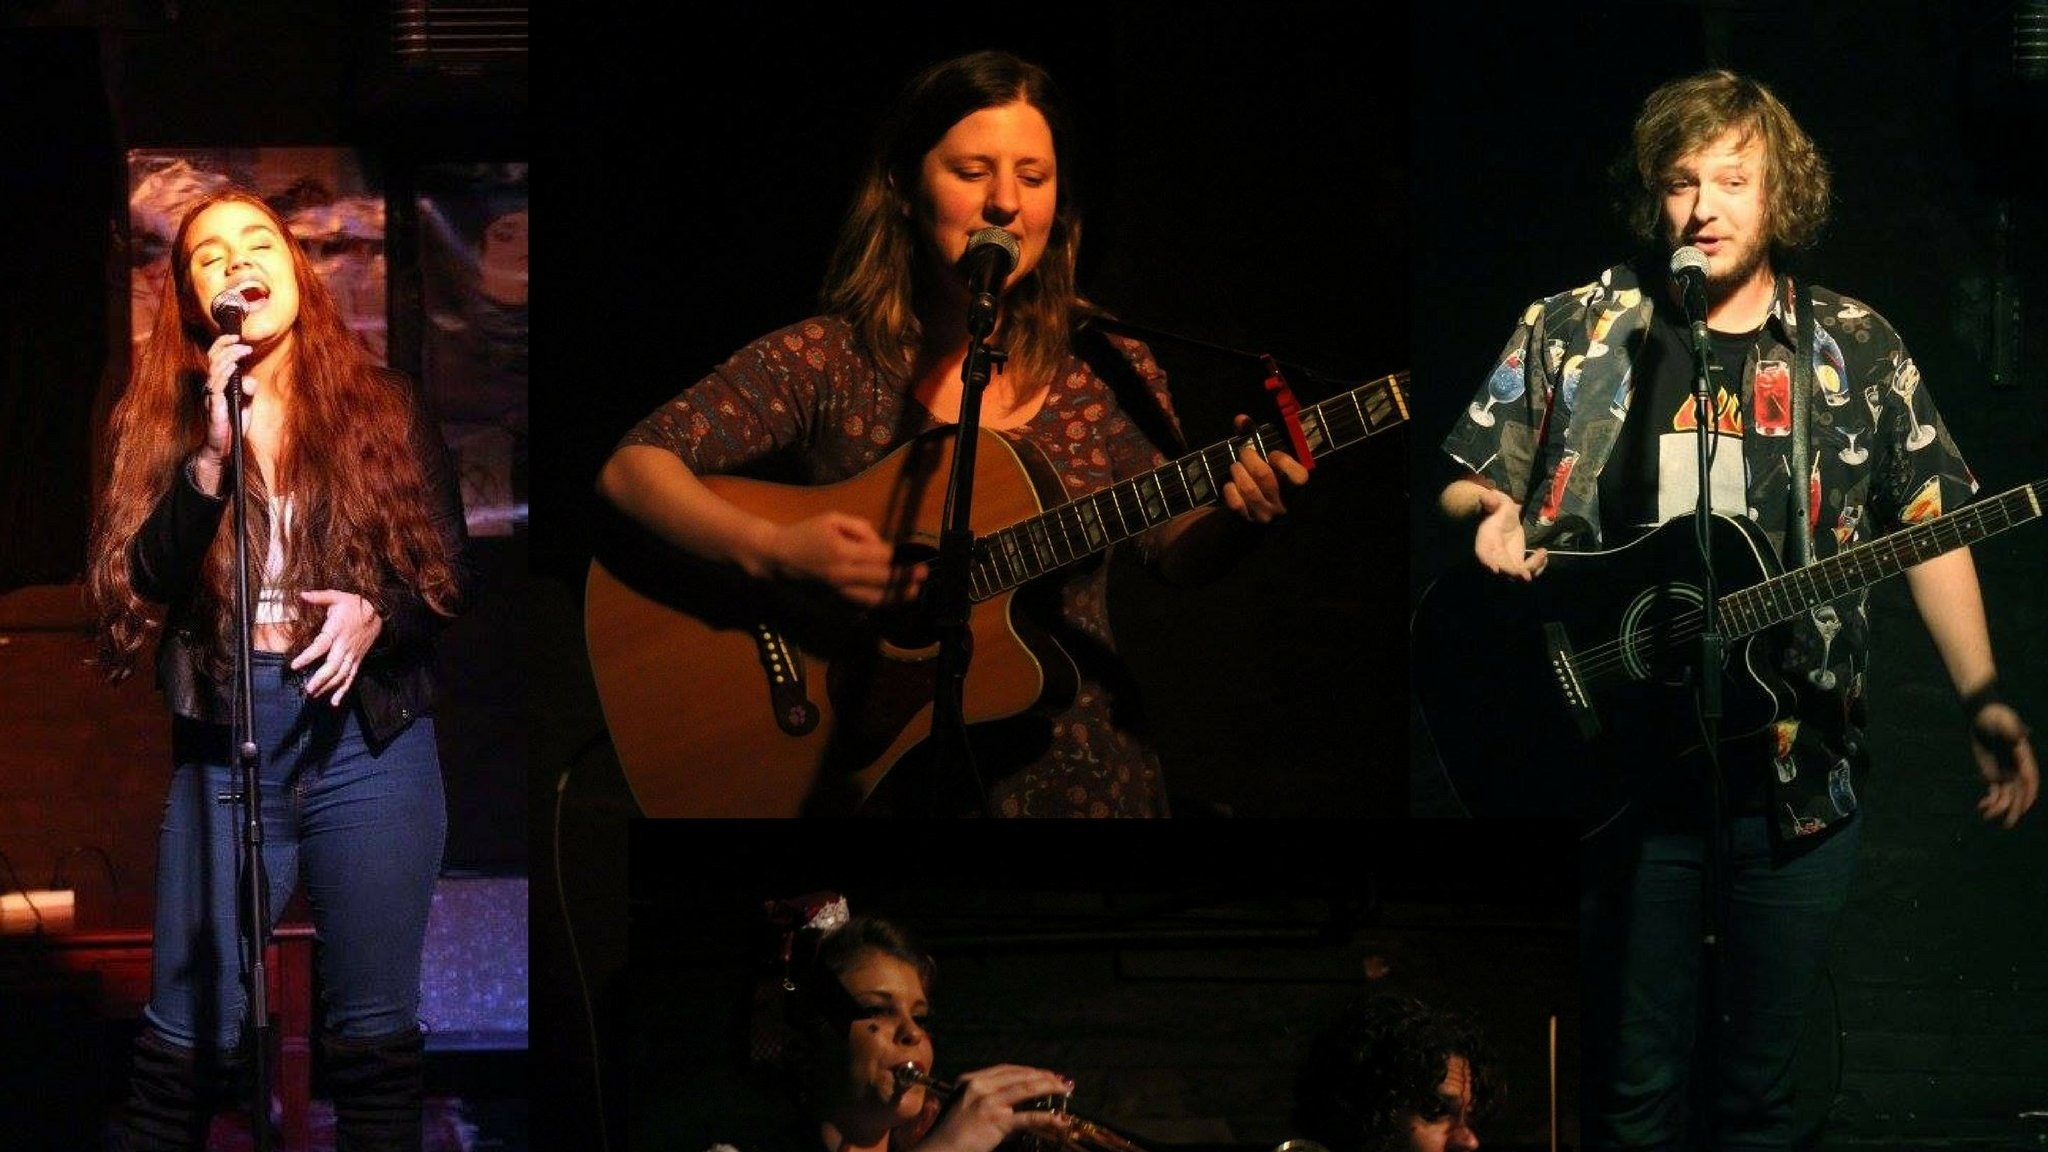 Thursday Live Music Gigs at Club Voltaire